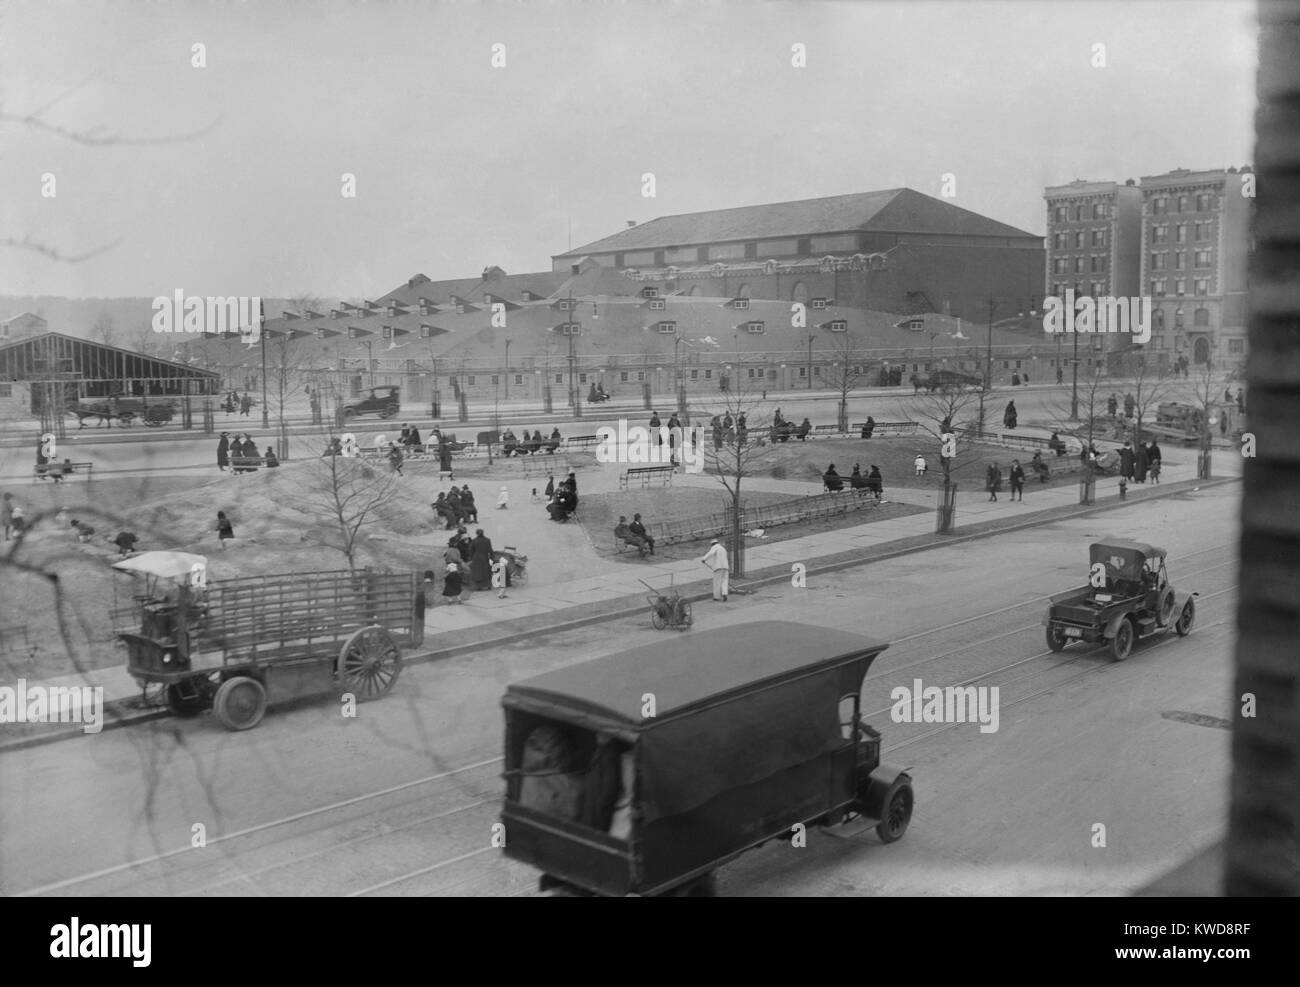 Evangelist Billy Sunday's Tabernacle tent at 168th Street in New York City, 1917 (BSLOC_2016_8_113) - Stock Image